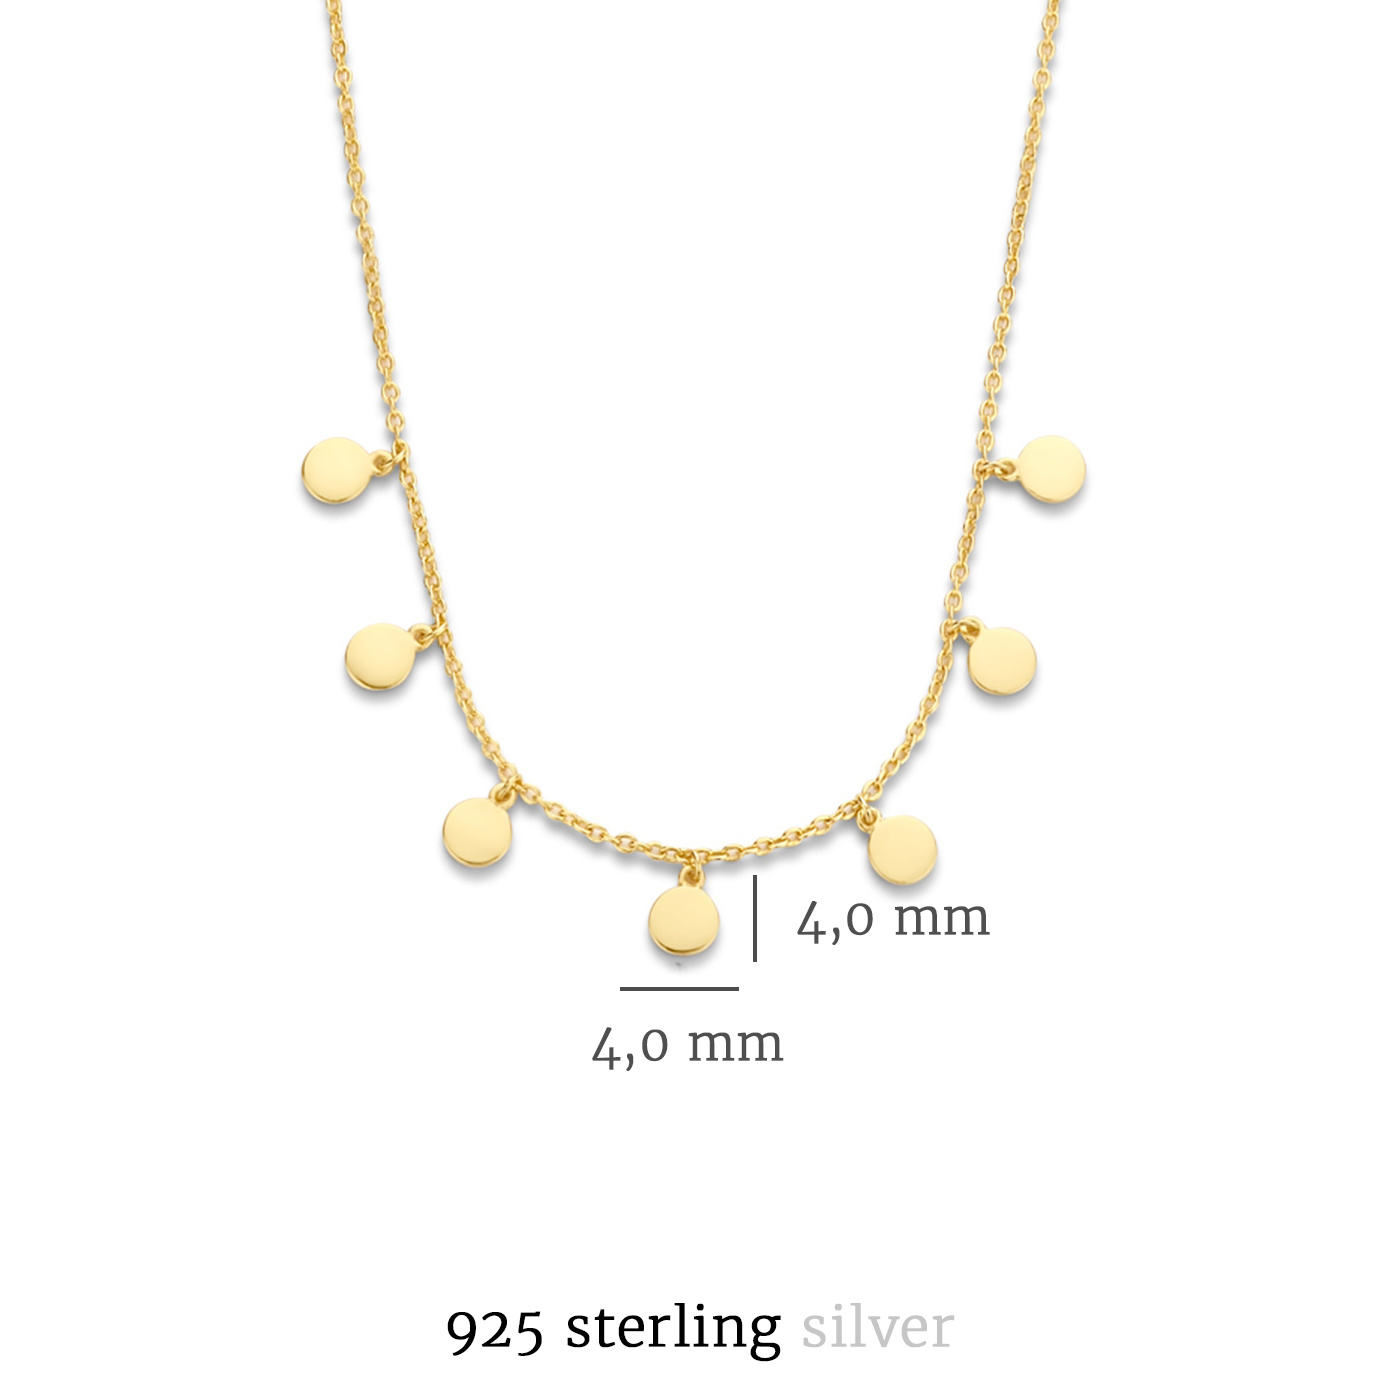 Selected Jewels Julie Belle 925 sterling silver gold colored necklace with coins